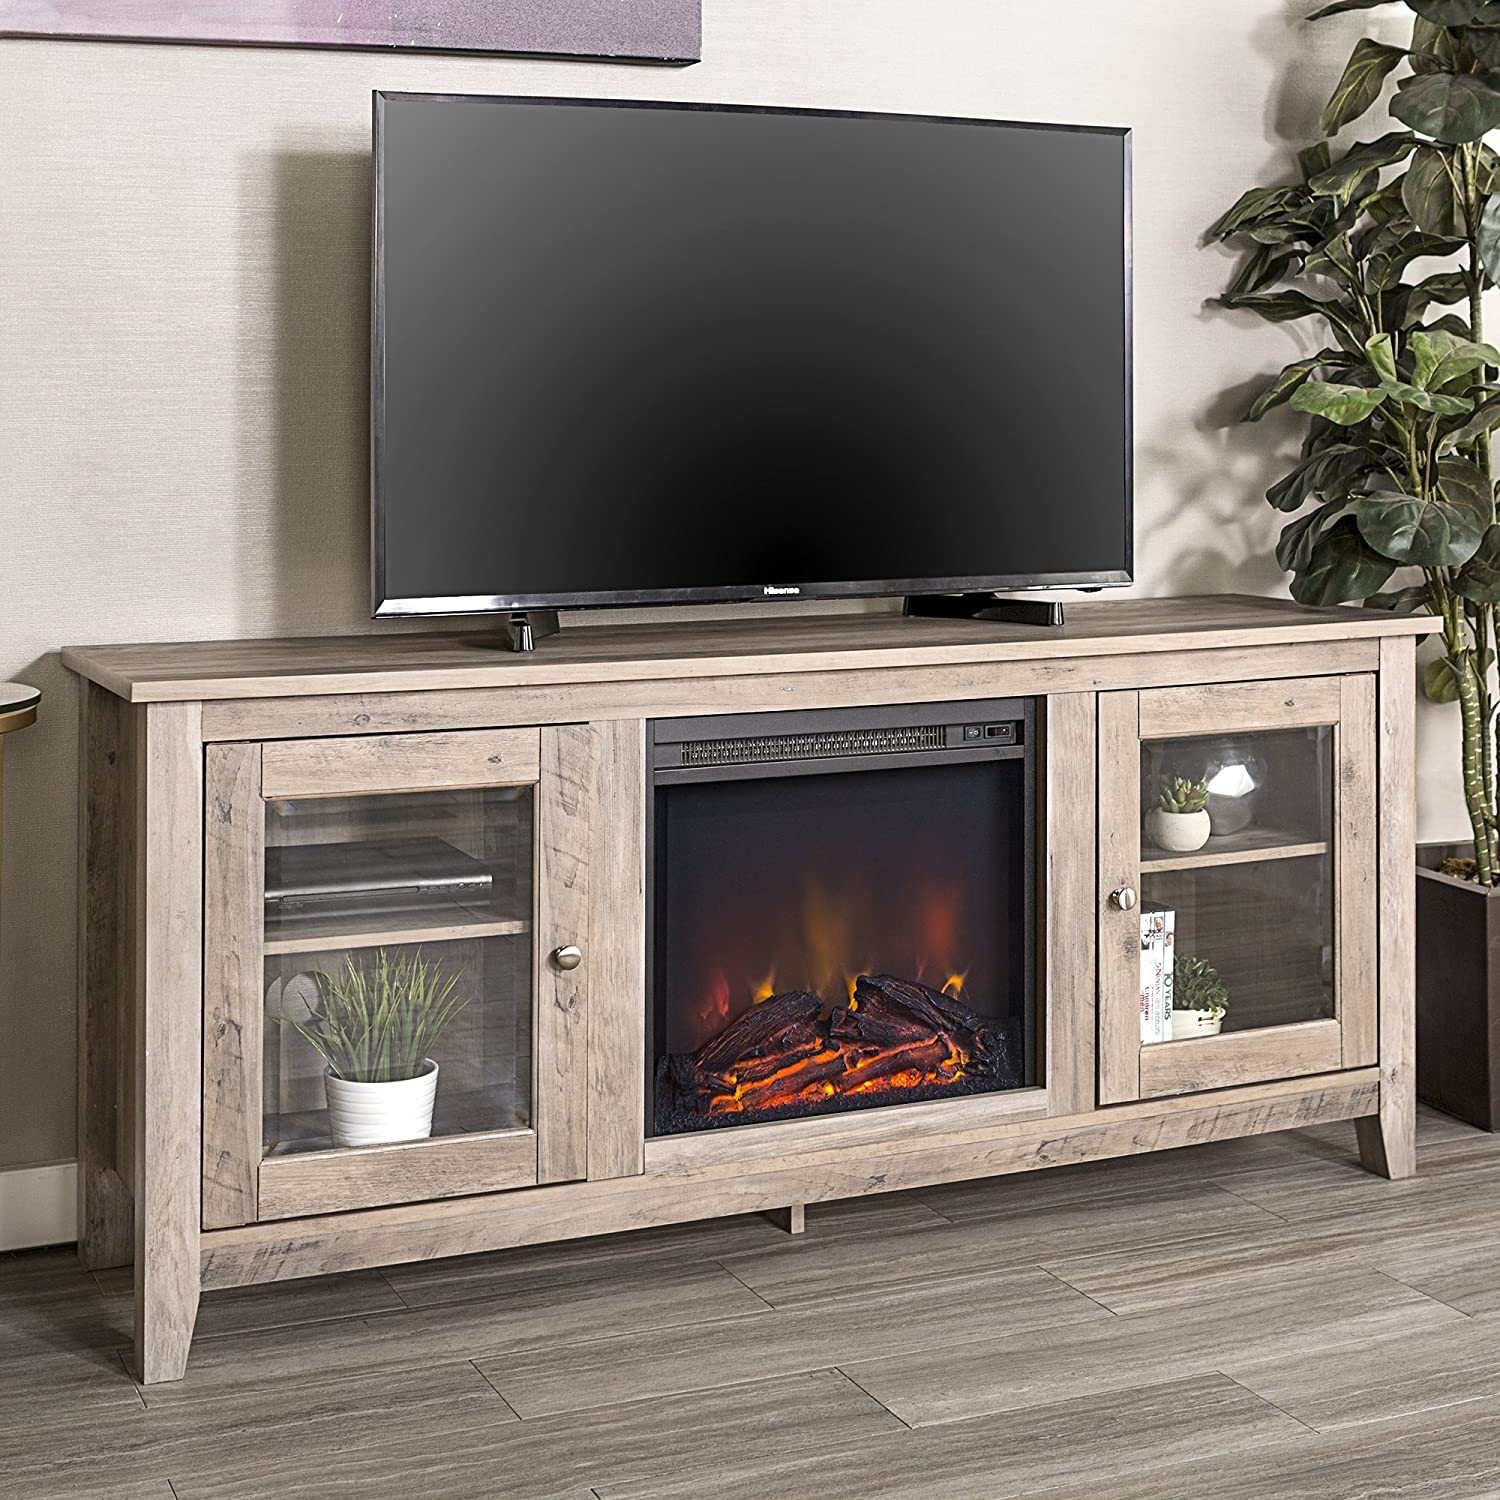 Walker Edison Traditional Wood 65 inch Fireplace Stand for TVs